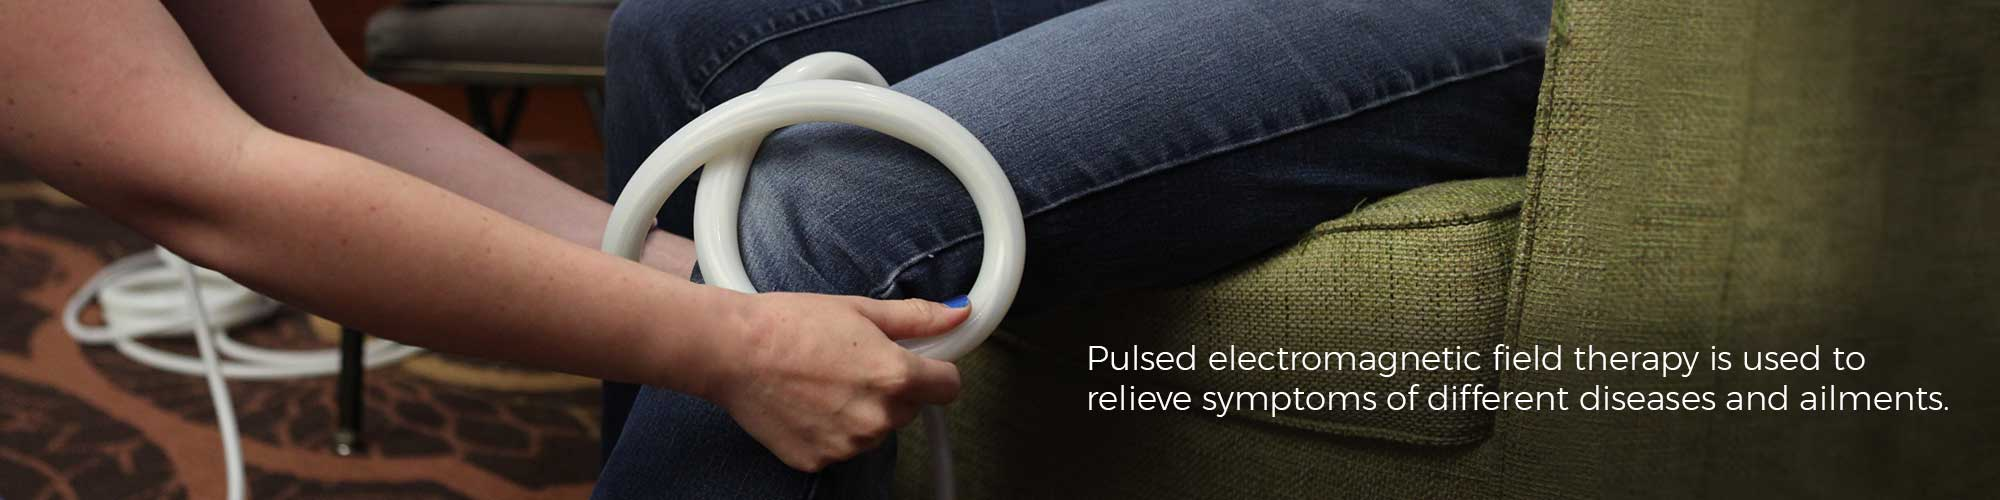 Pulsed electromagnetic field therapy is used to relieve symptoms of different diseases and ailments.